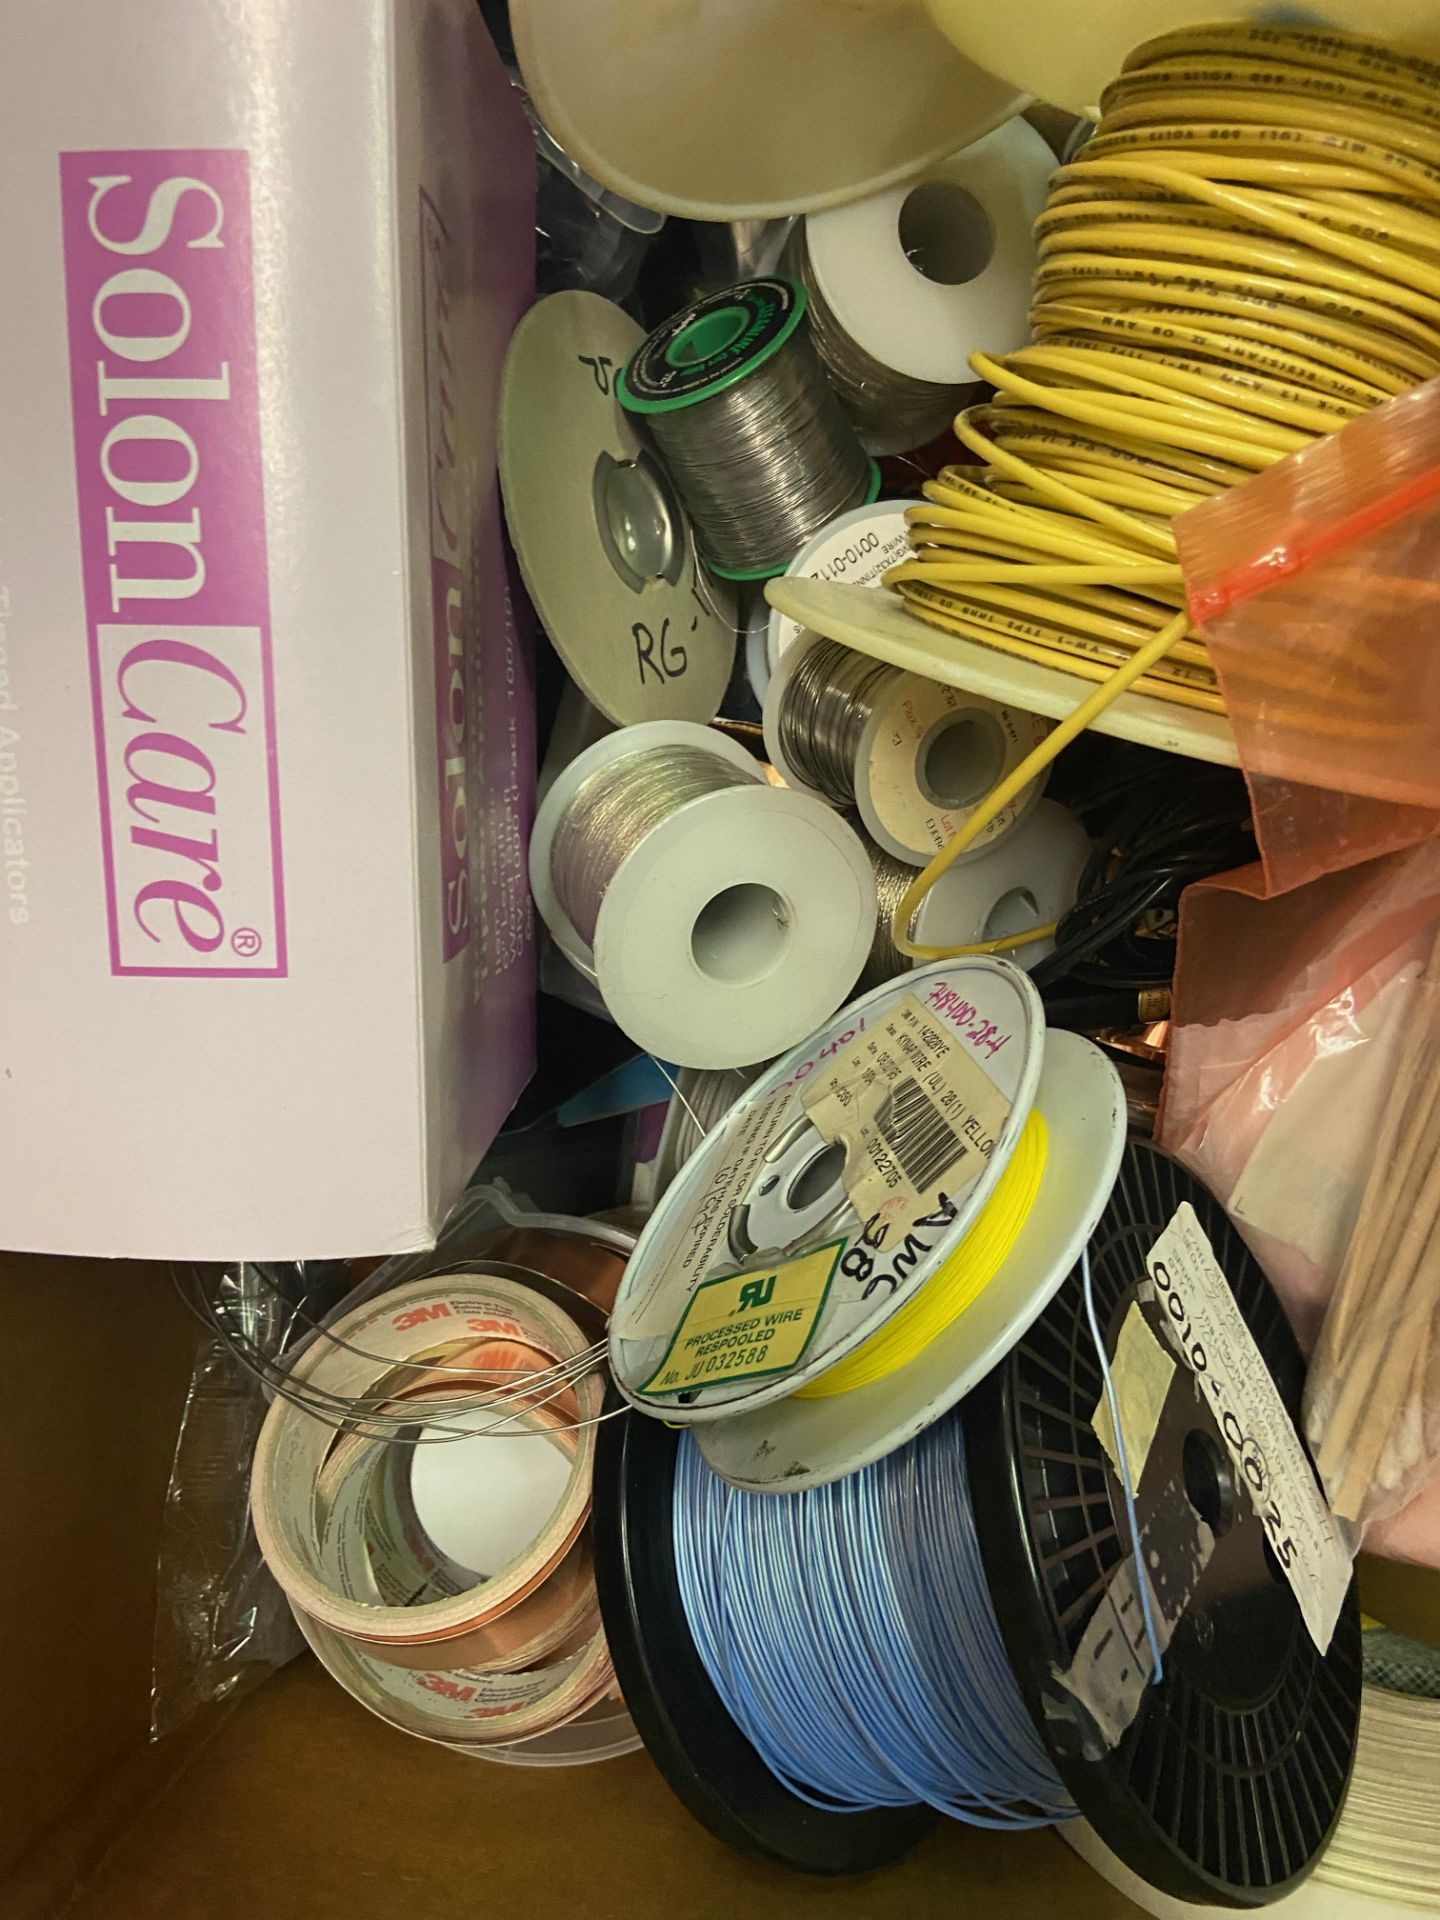 Qty 2 Boxes of Miscellaneous Soldering Lab Desk Items, Including: (SEE PHOTOS FOR ALL INCLUDED), - Image 8 of 12